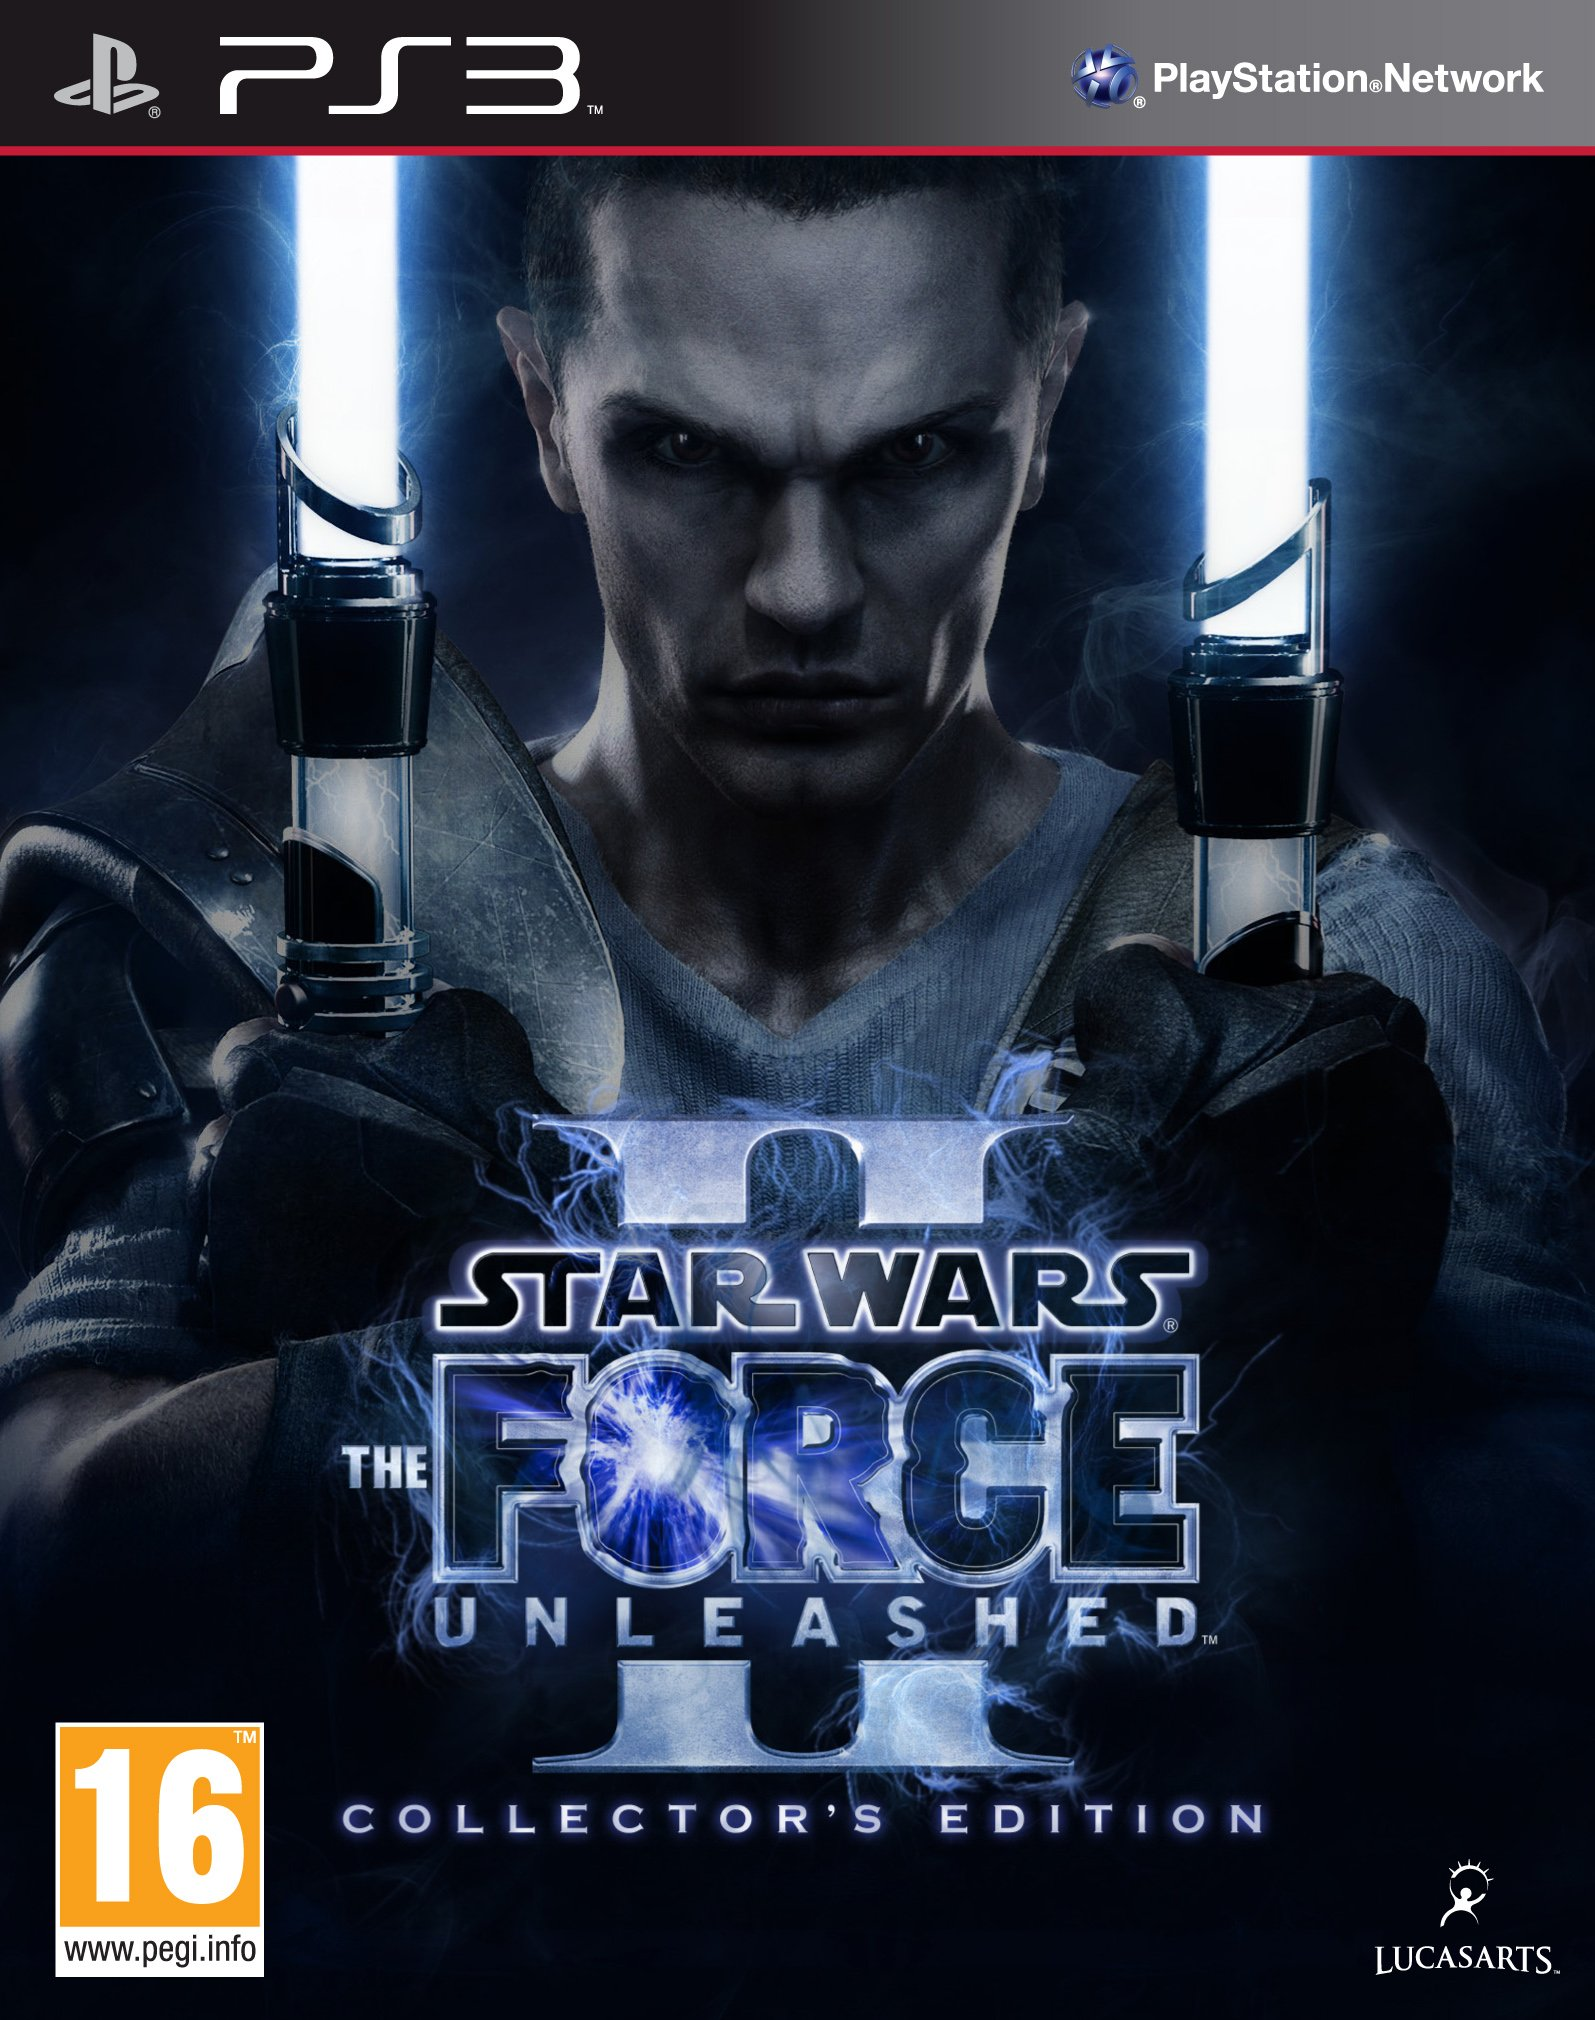 Star Wars The Force Unleashed Ii Wallpapers Video Game Hq Star Wars The Force Unleashed Ii Pictures 4k Wallpapers 2019